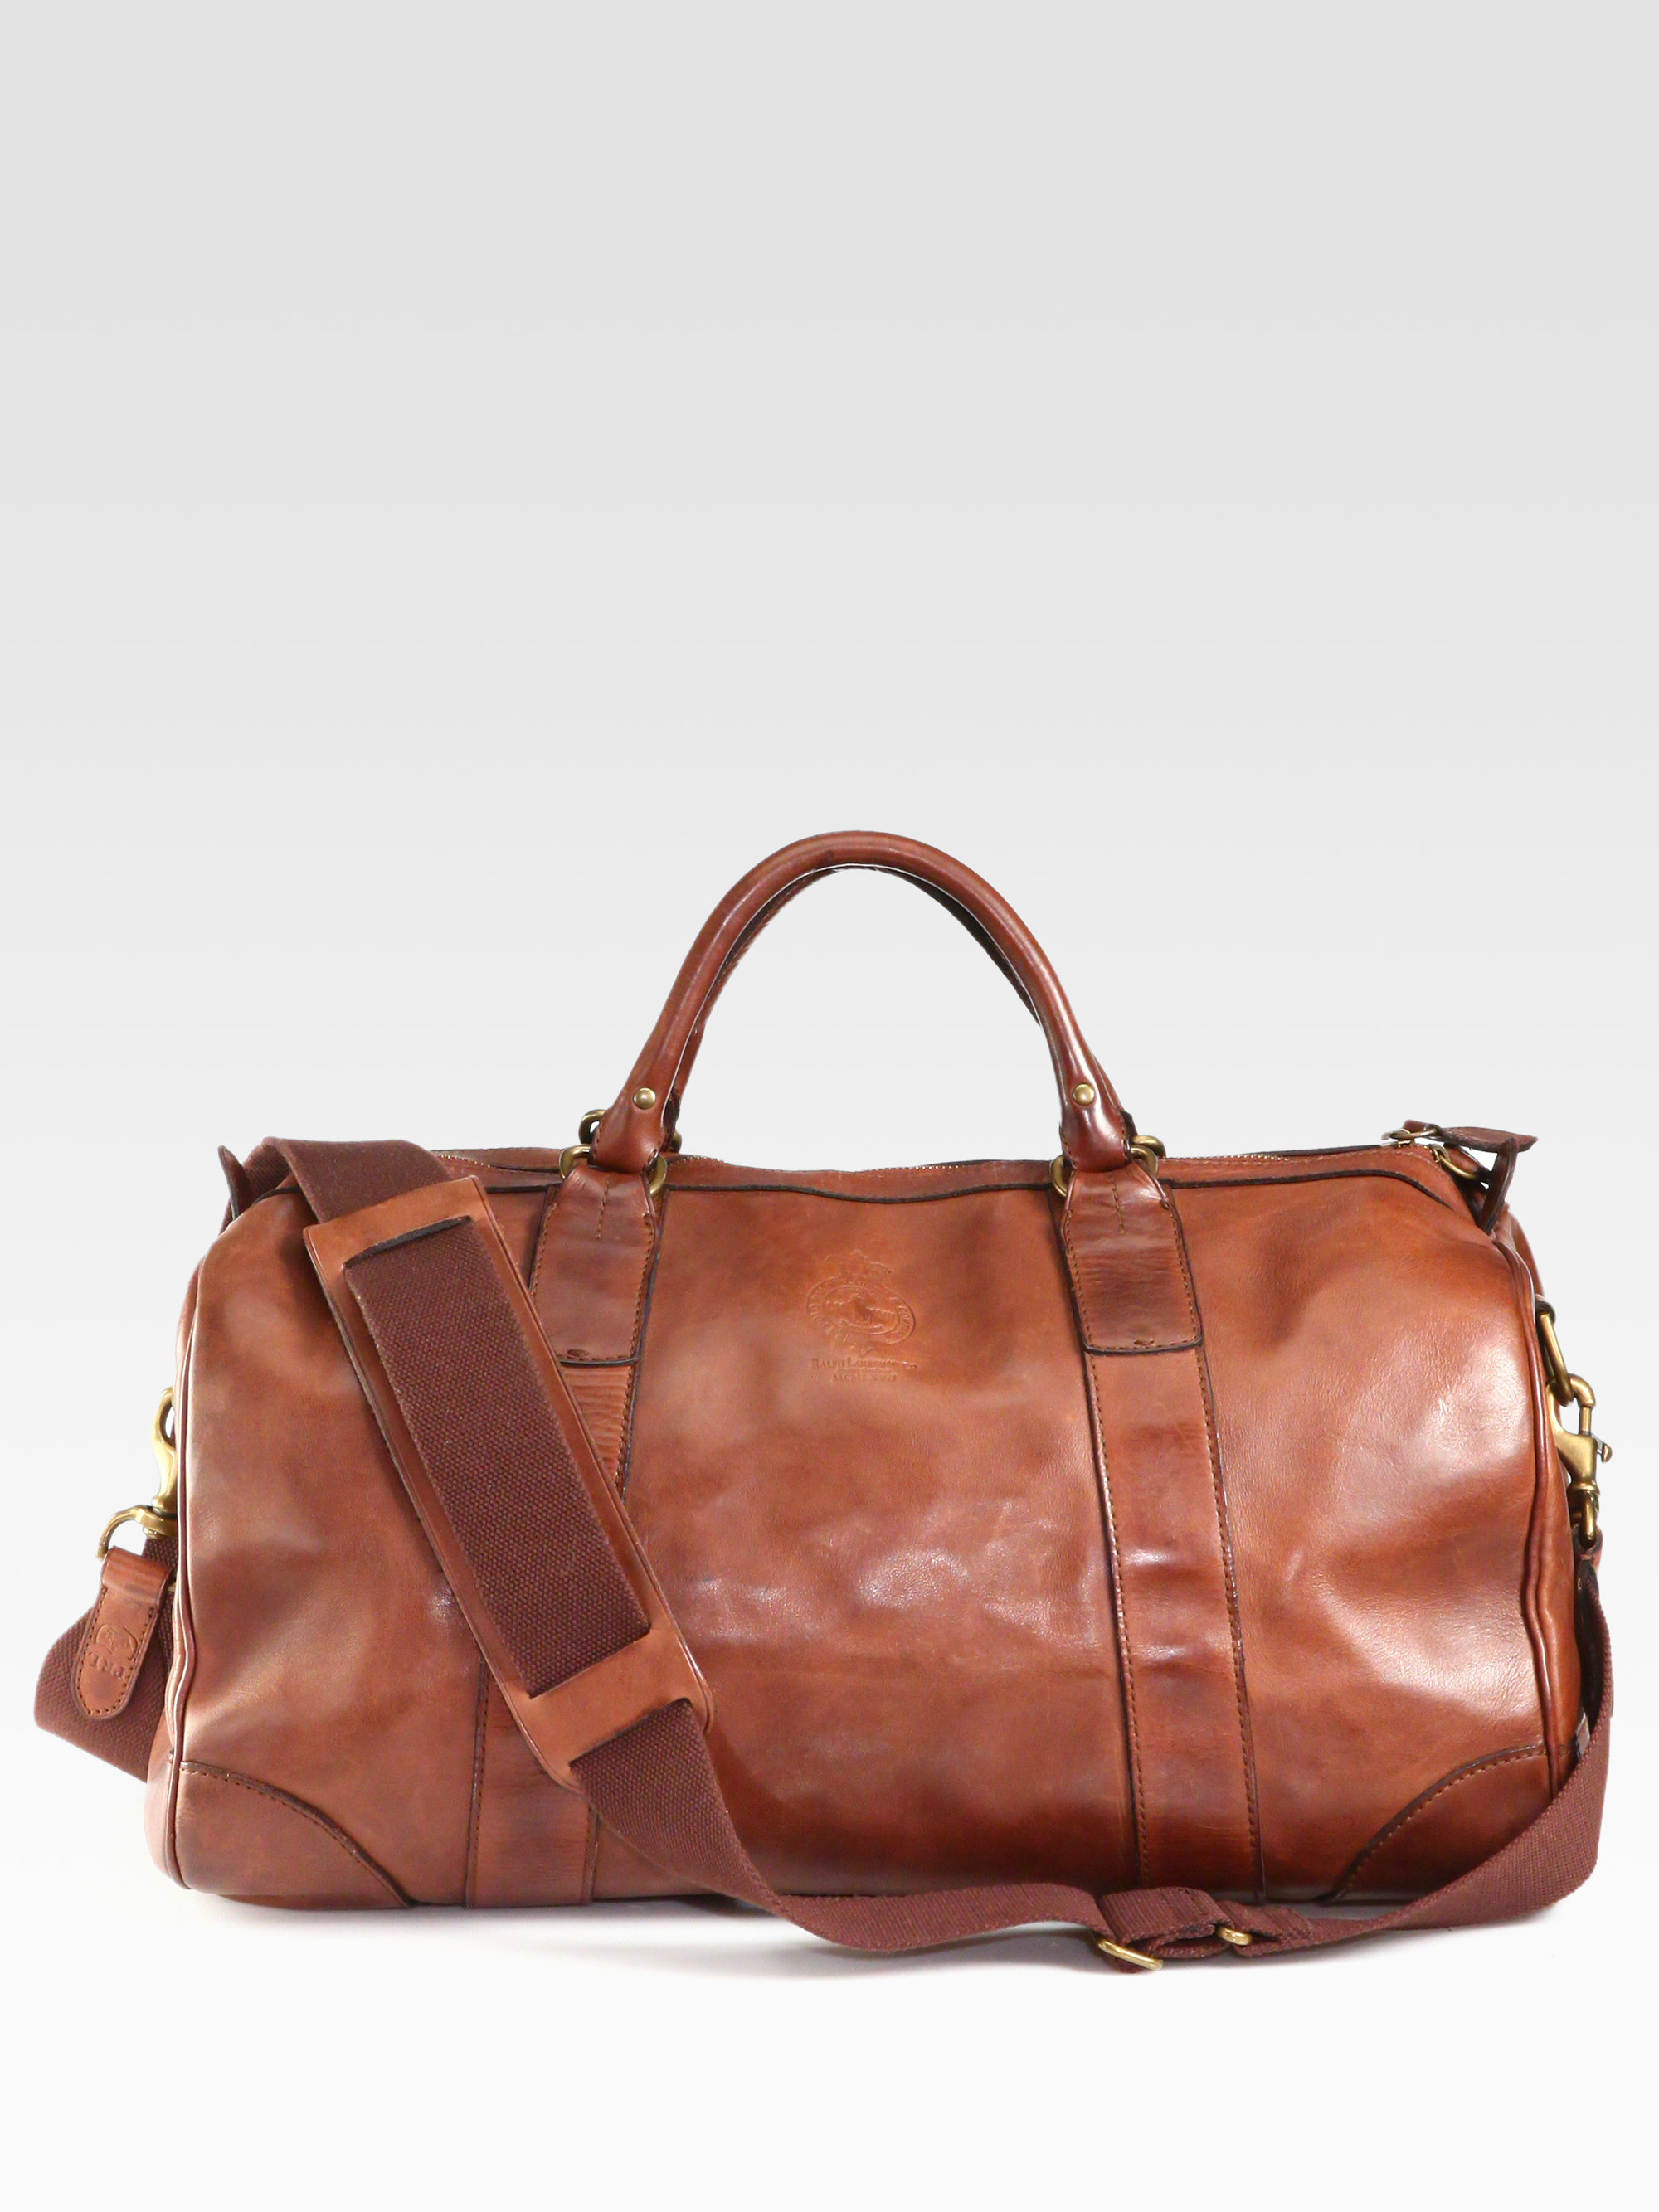 Lyst - Polo Ralph Lauren Leather Gym Bag in Brown for Men 9778f006bf585